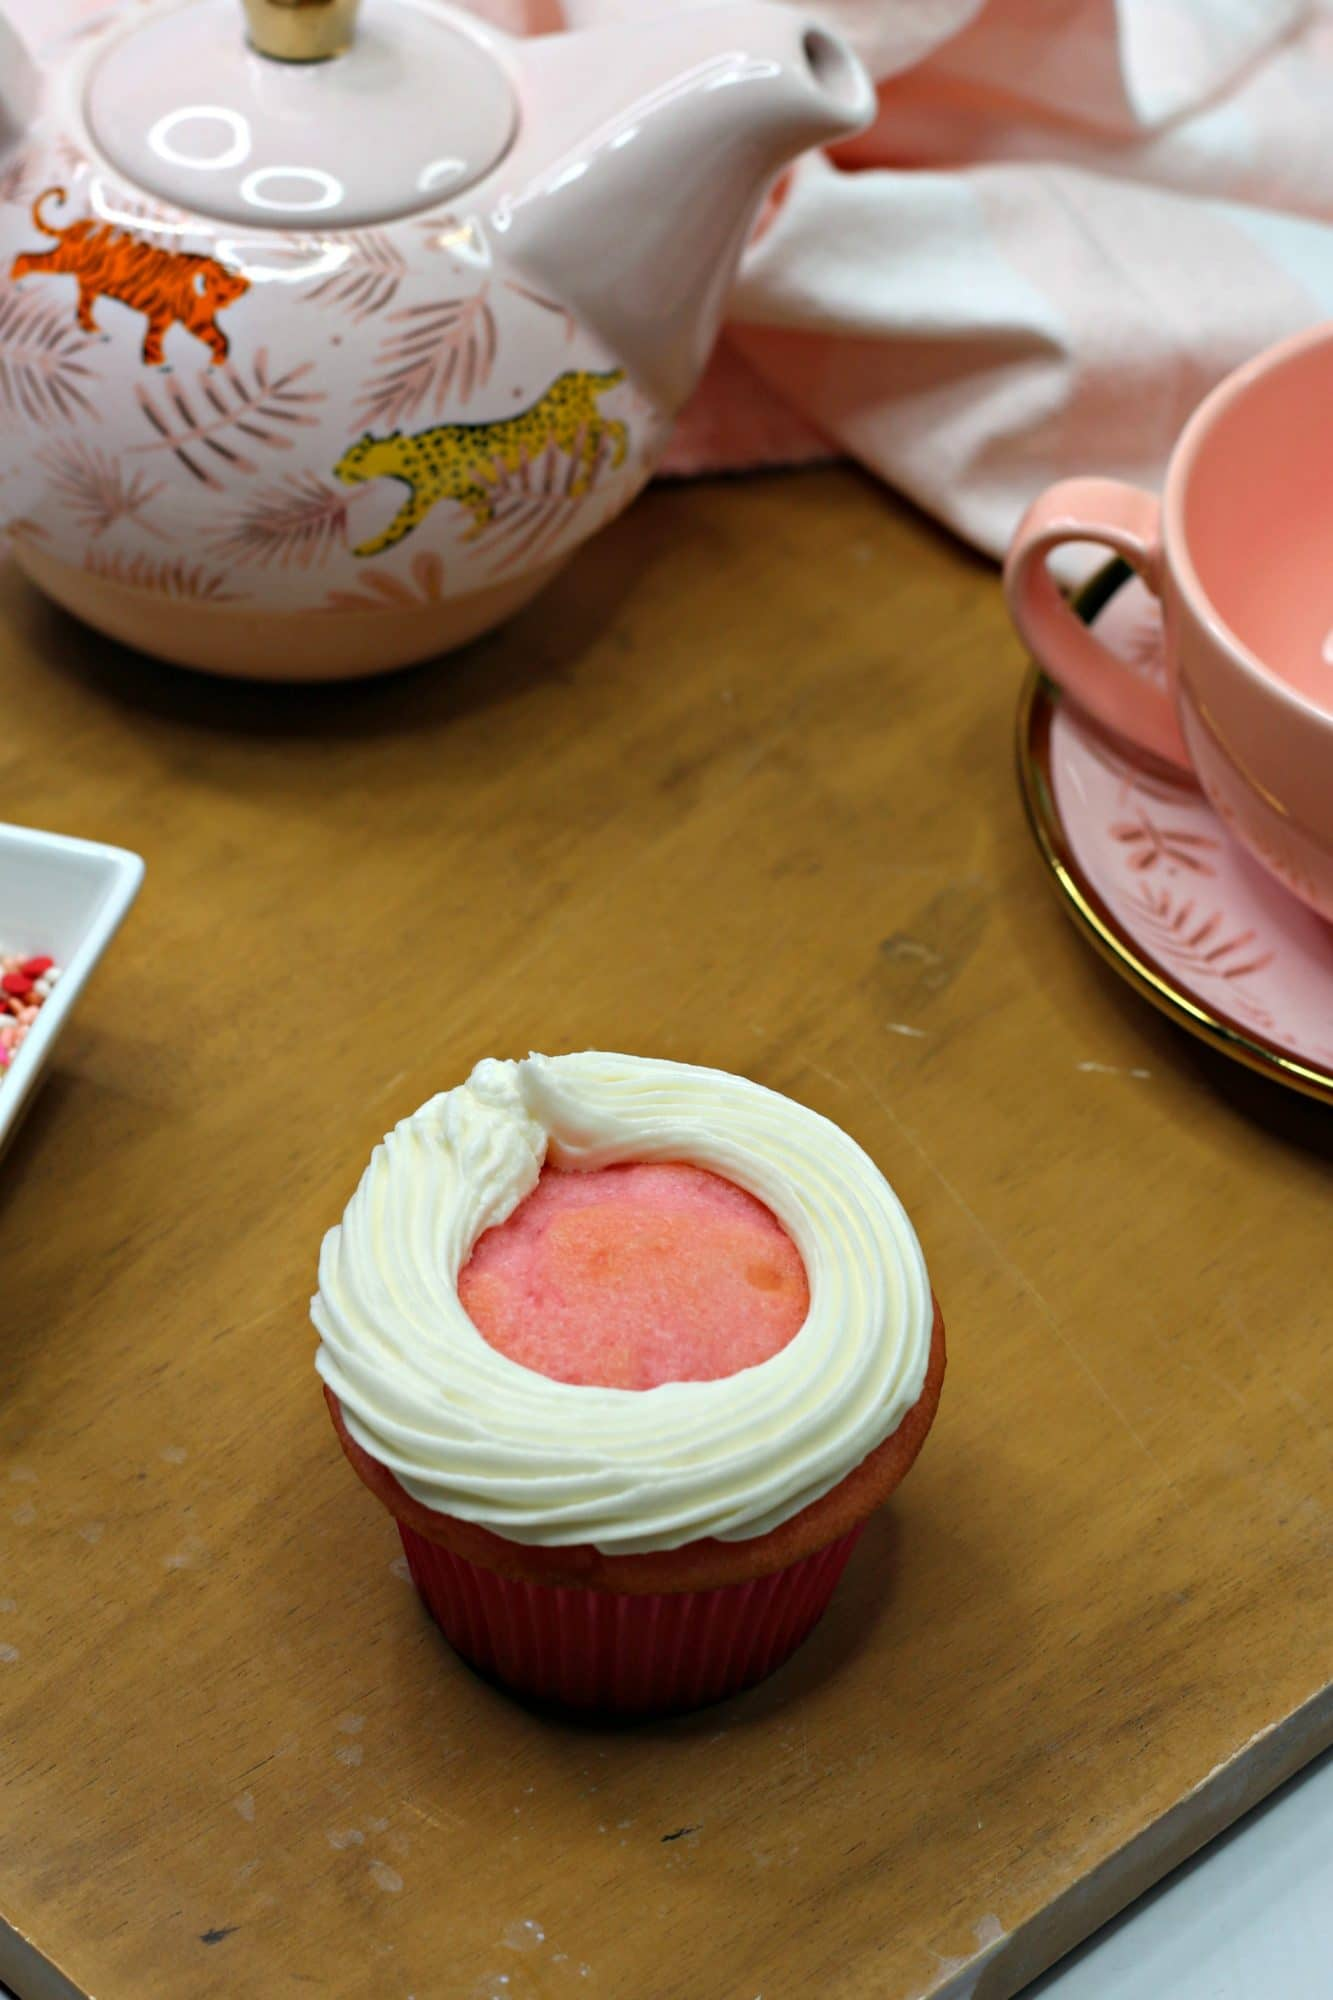 pink cupcake with white frosting outline around the edge